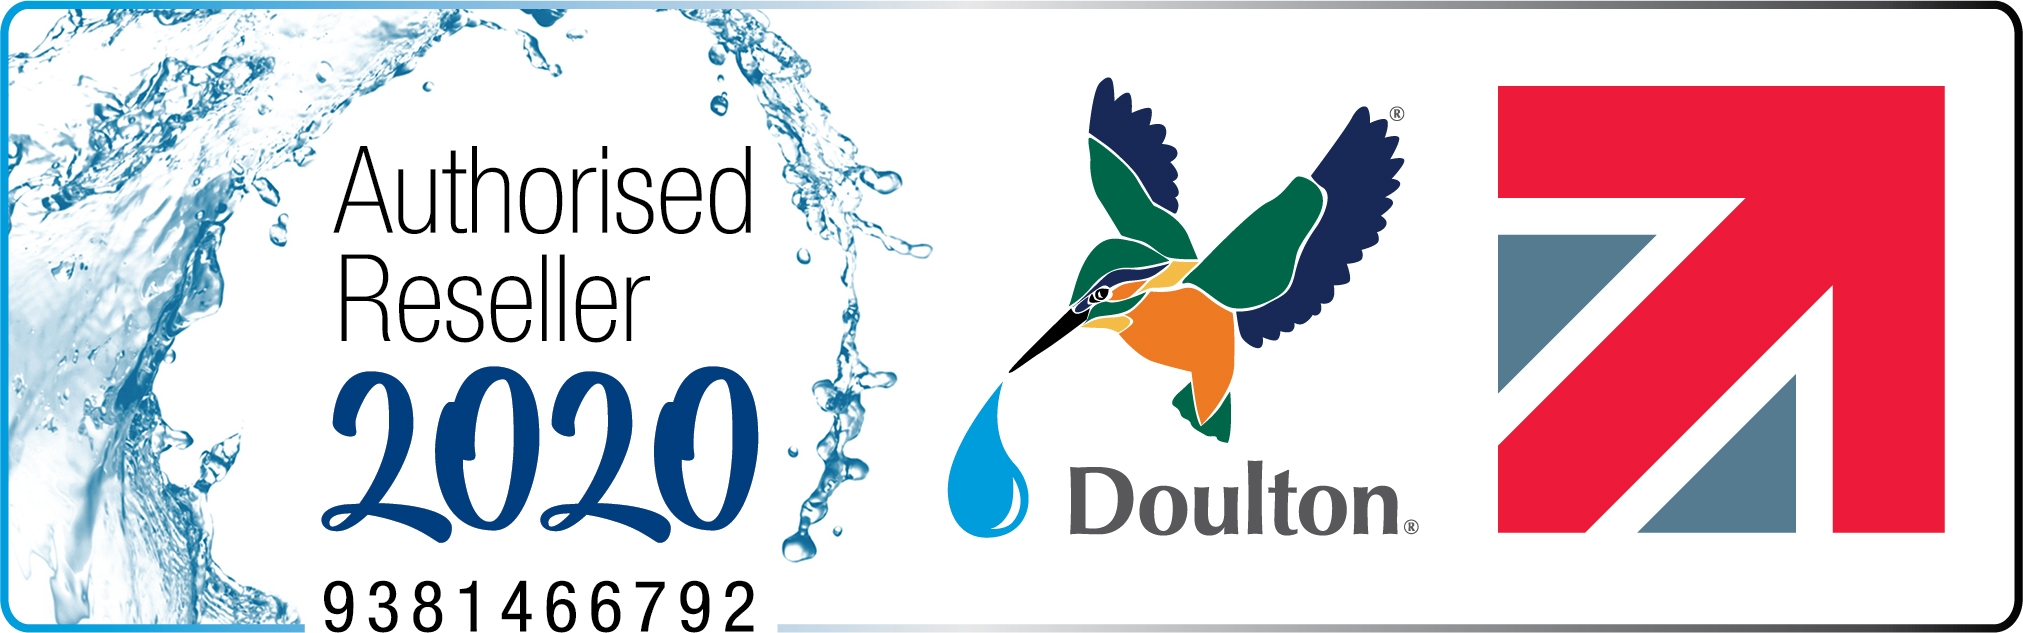 Doulton Authorised Reseller Logo - Finerfilters 2020